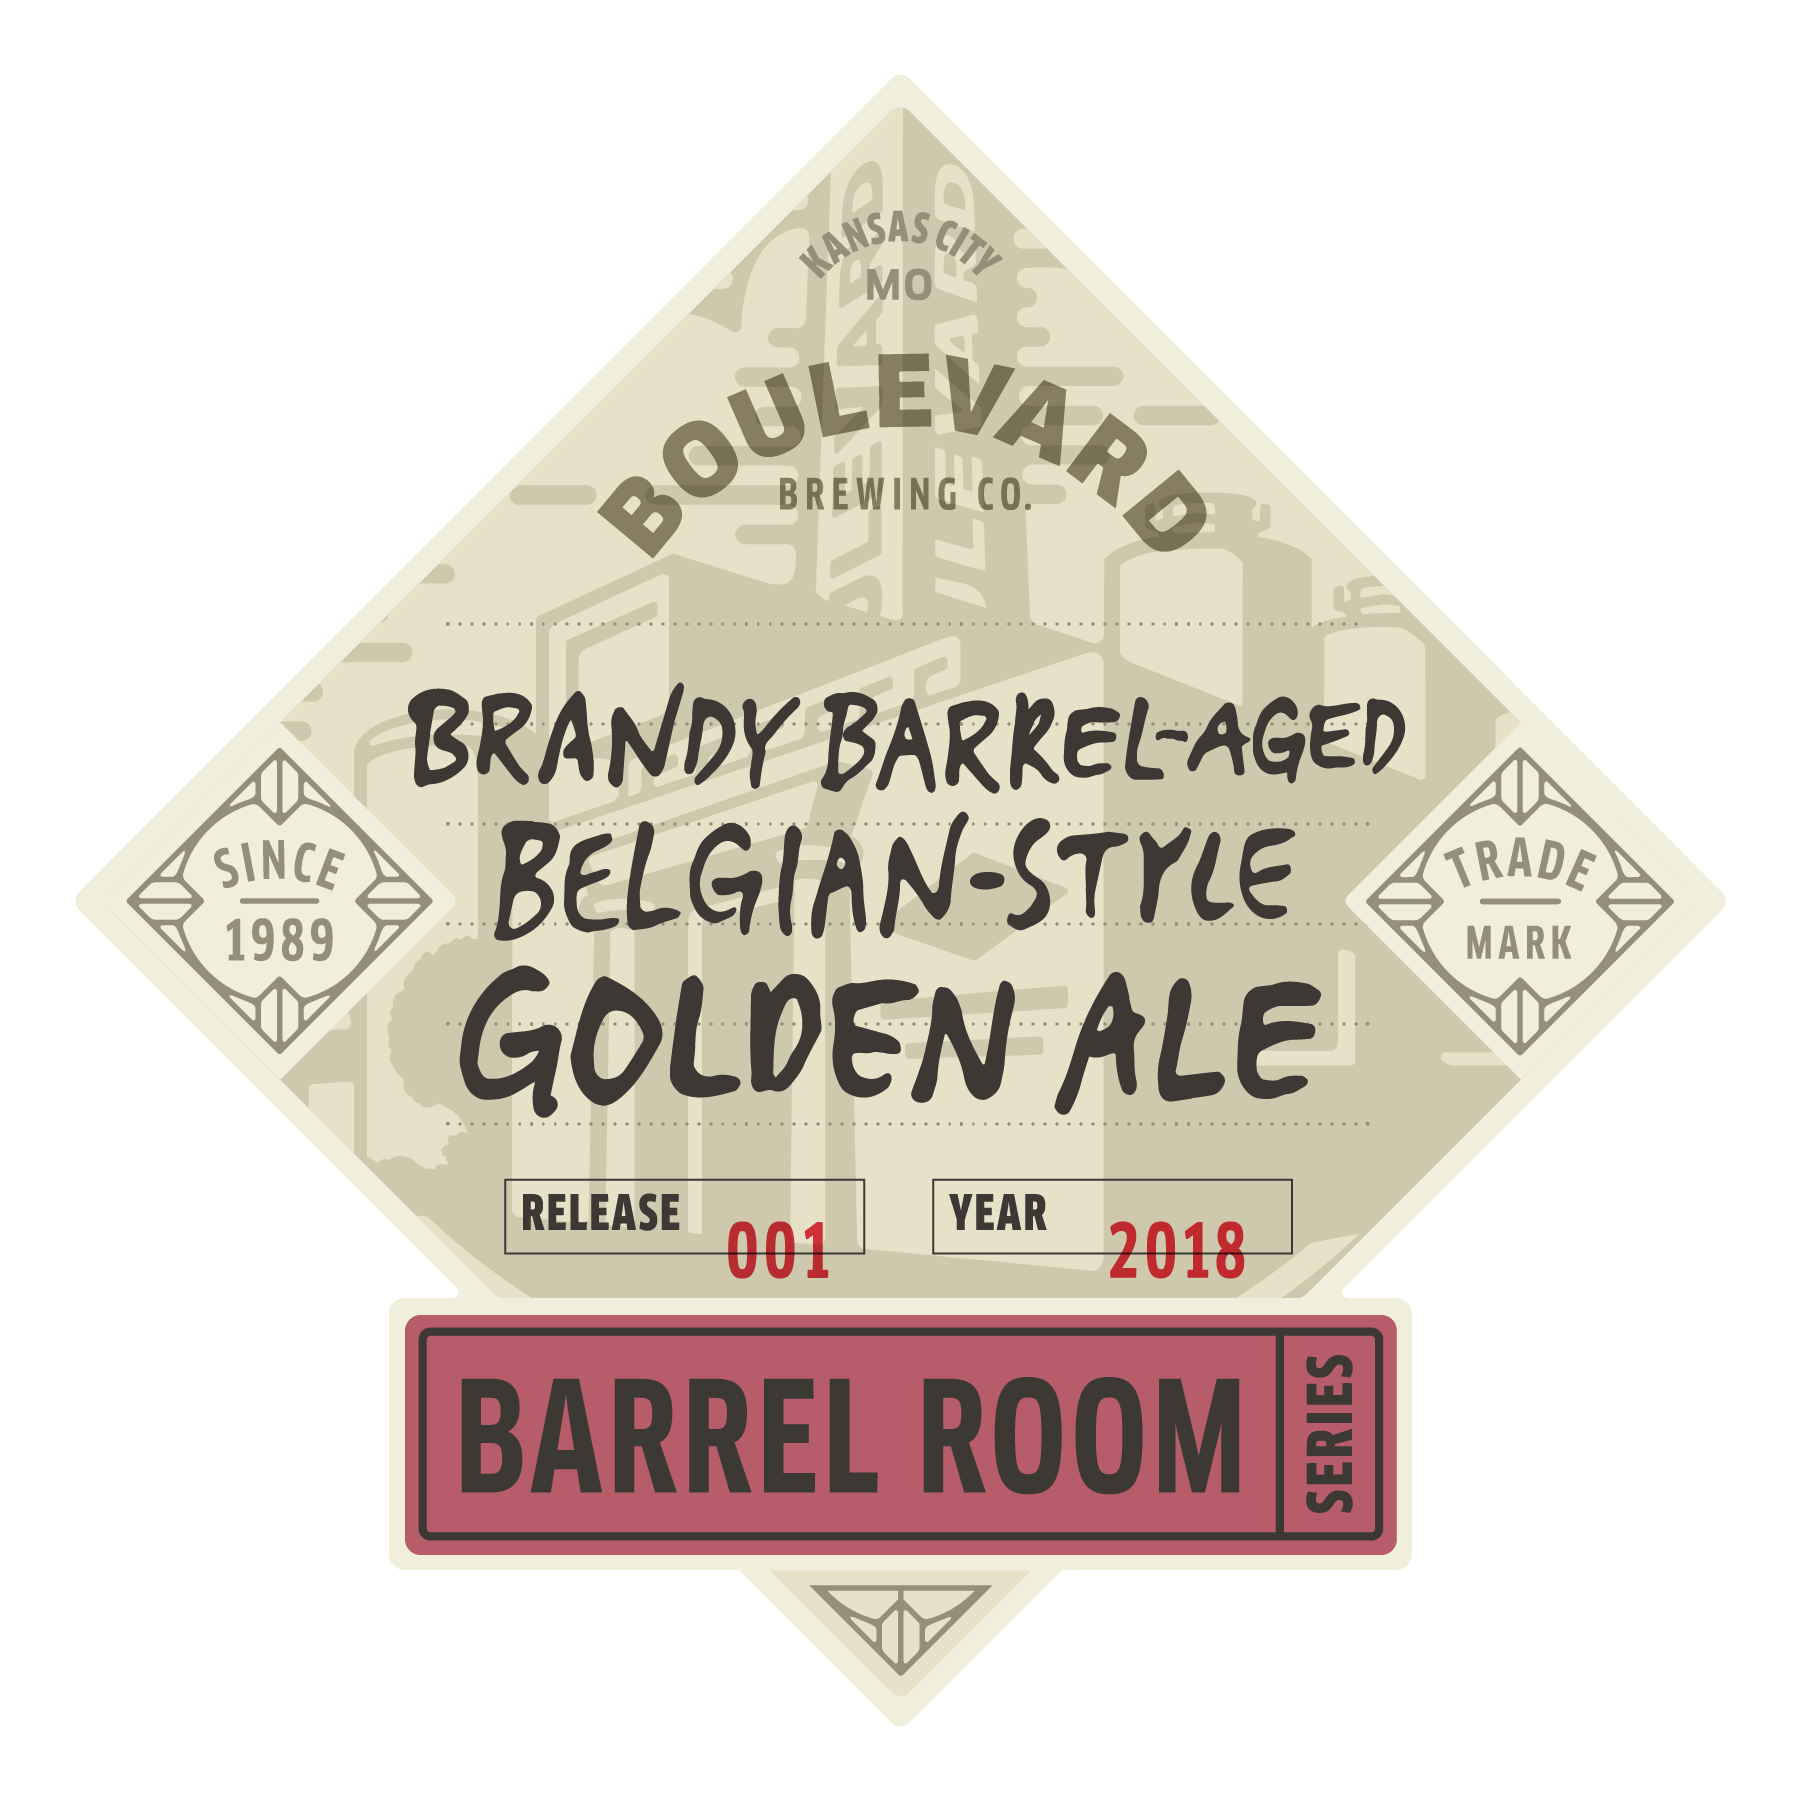 Brandy Barrel-Aged Belgian-Style Golden Ale